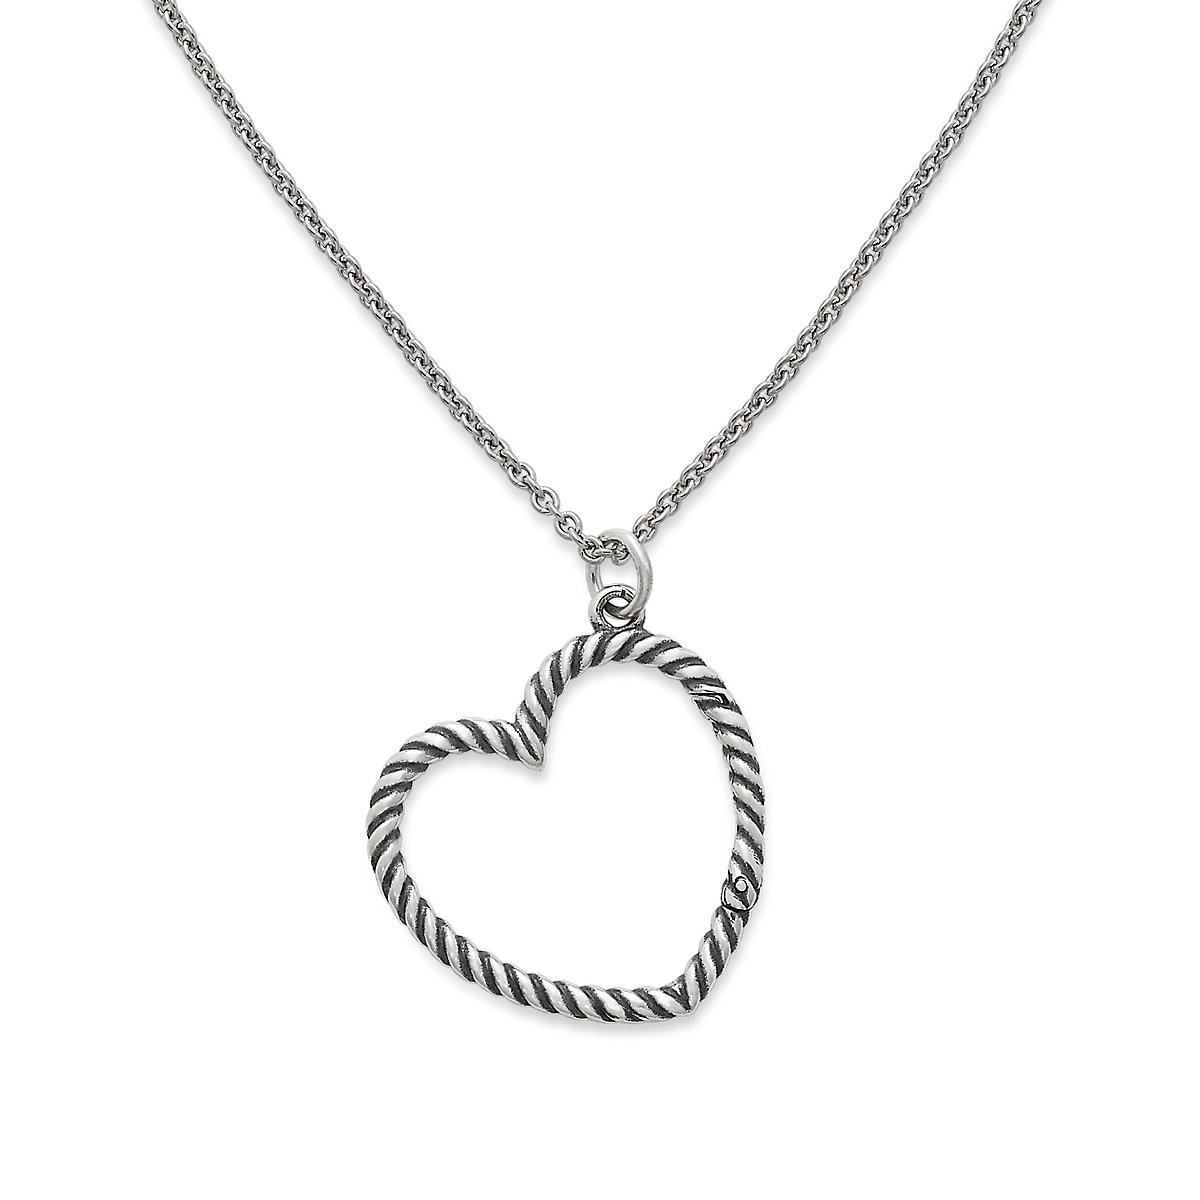 Changeable Heart Charm Holder Necklace   James Avery